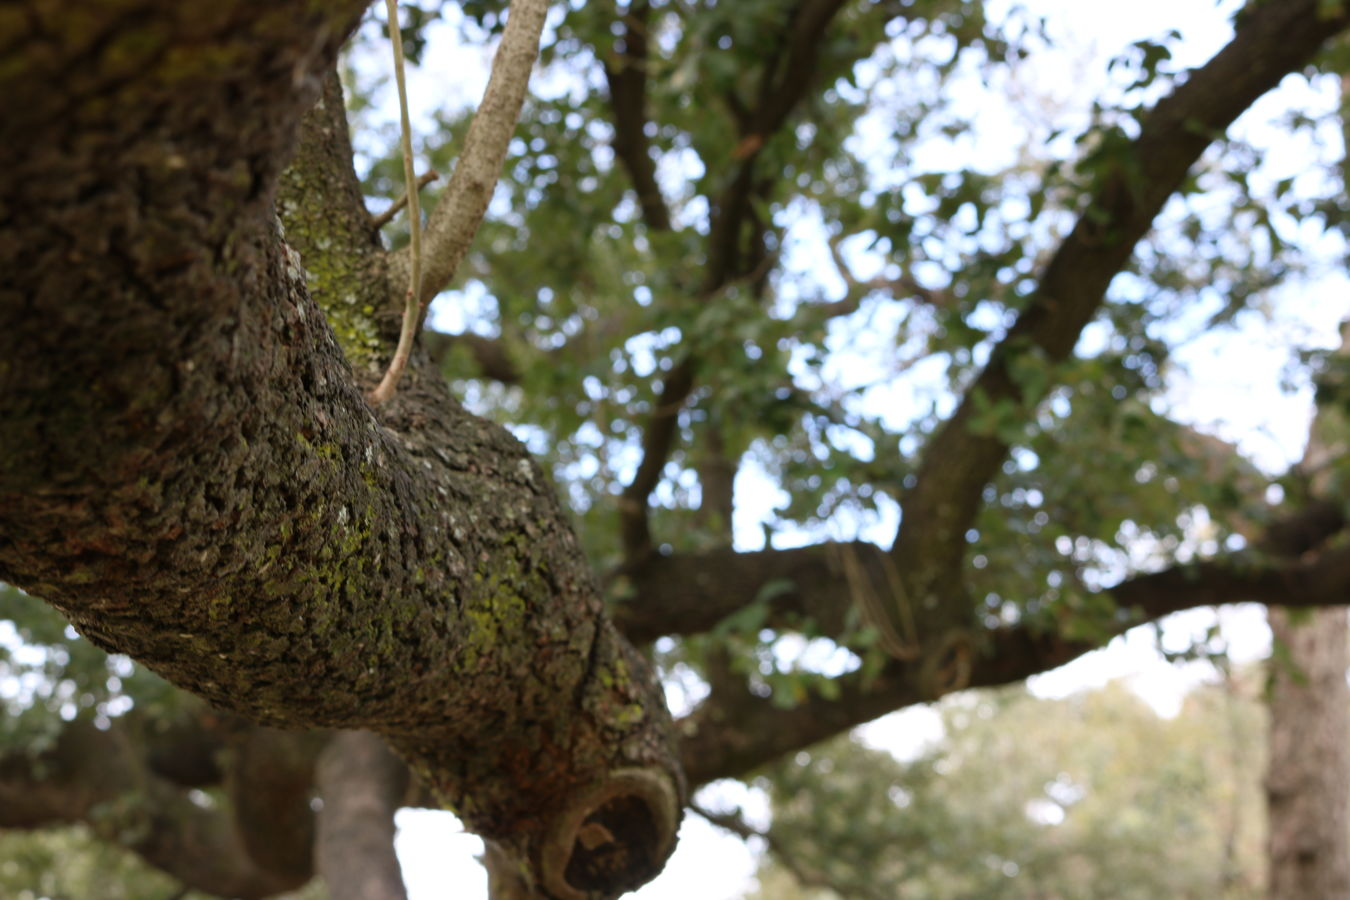 Tree Low Angle View Tree Trunk Branch Sky Nature No People Growth Day Textured  Outdoors Animals In The Wild Close-up Animal Themes Perching Woodpecker No Filter Beauty In Nature Tree Park Bark Park Trees Shallow Depth Of Field Textured  Taking Photos